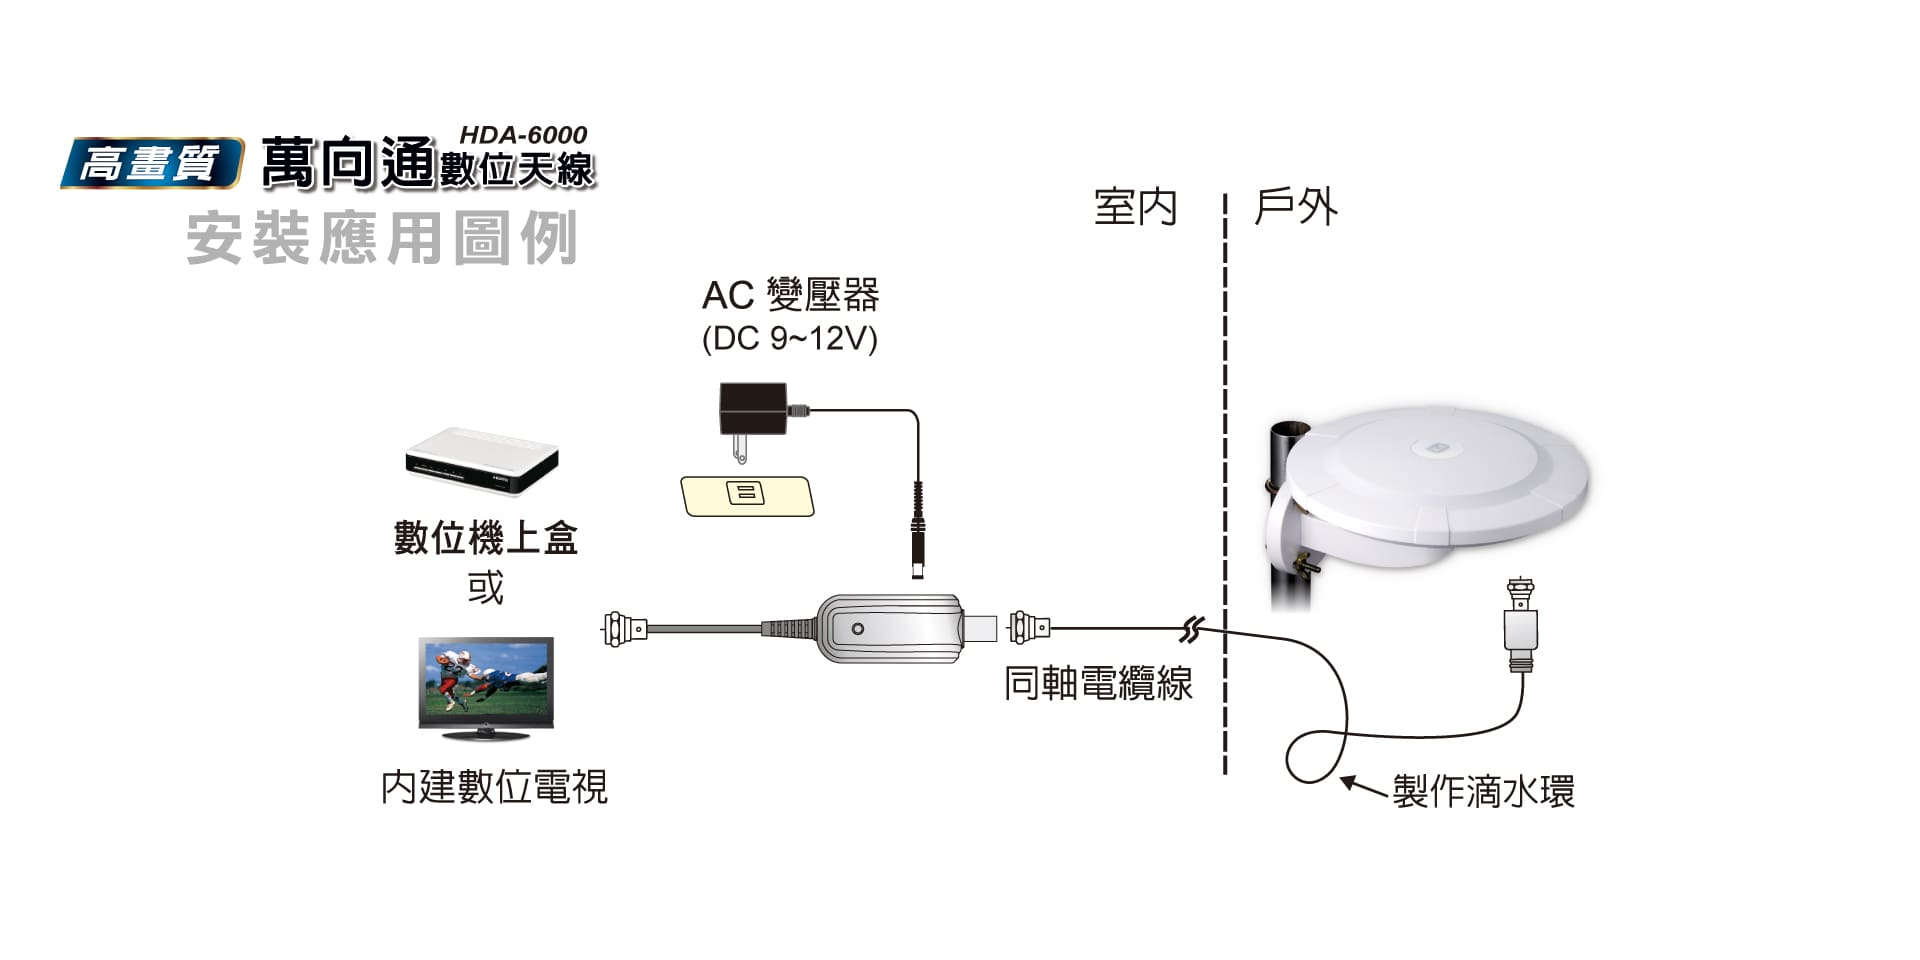 proimages/product/Antenna/HDA-6000/HDA-6000-03.jpg